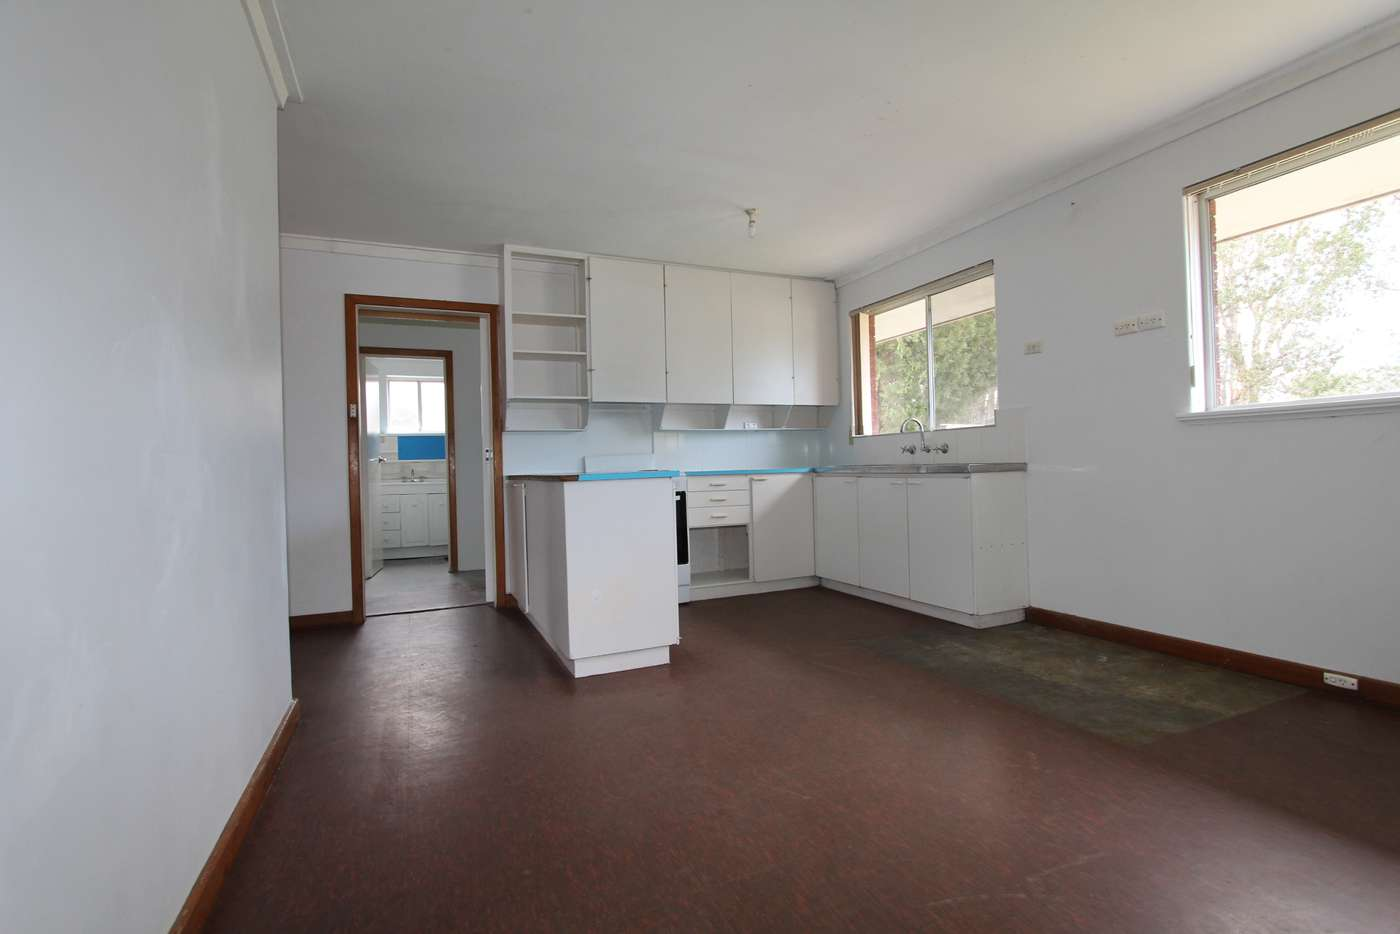 Sixth view of Homely house listing, 6 Ilma Street, Gosnells WA 6110